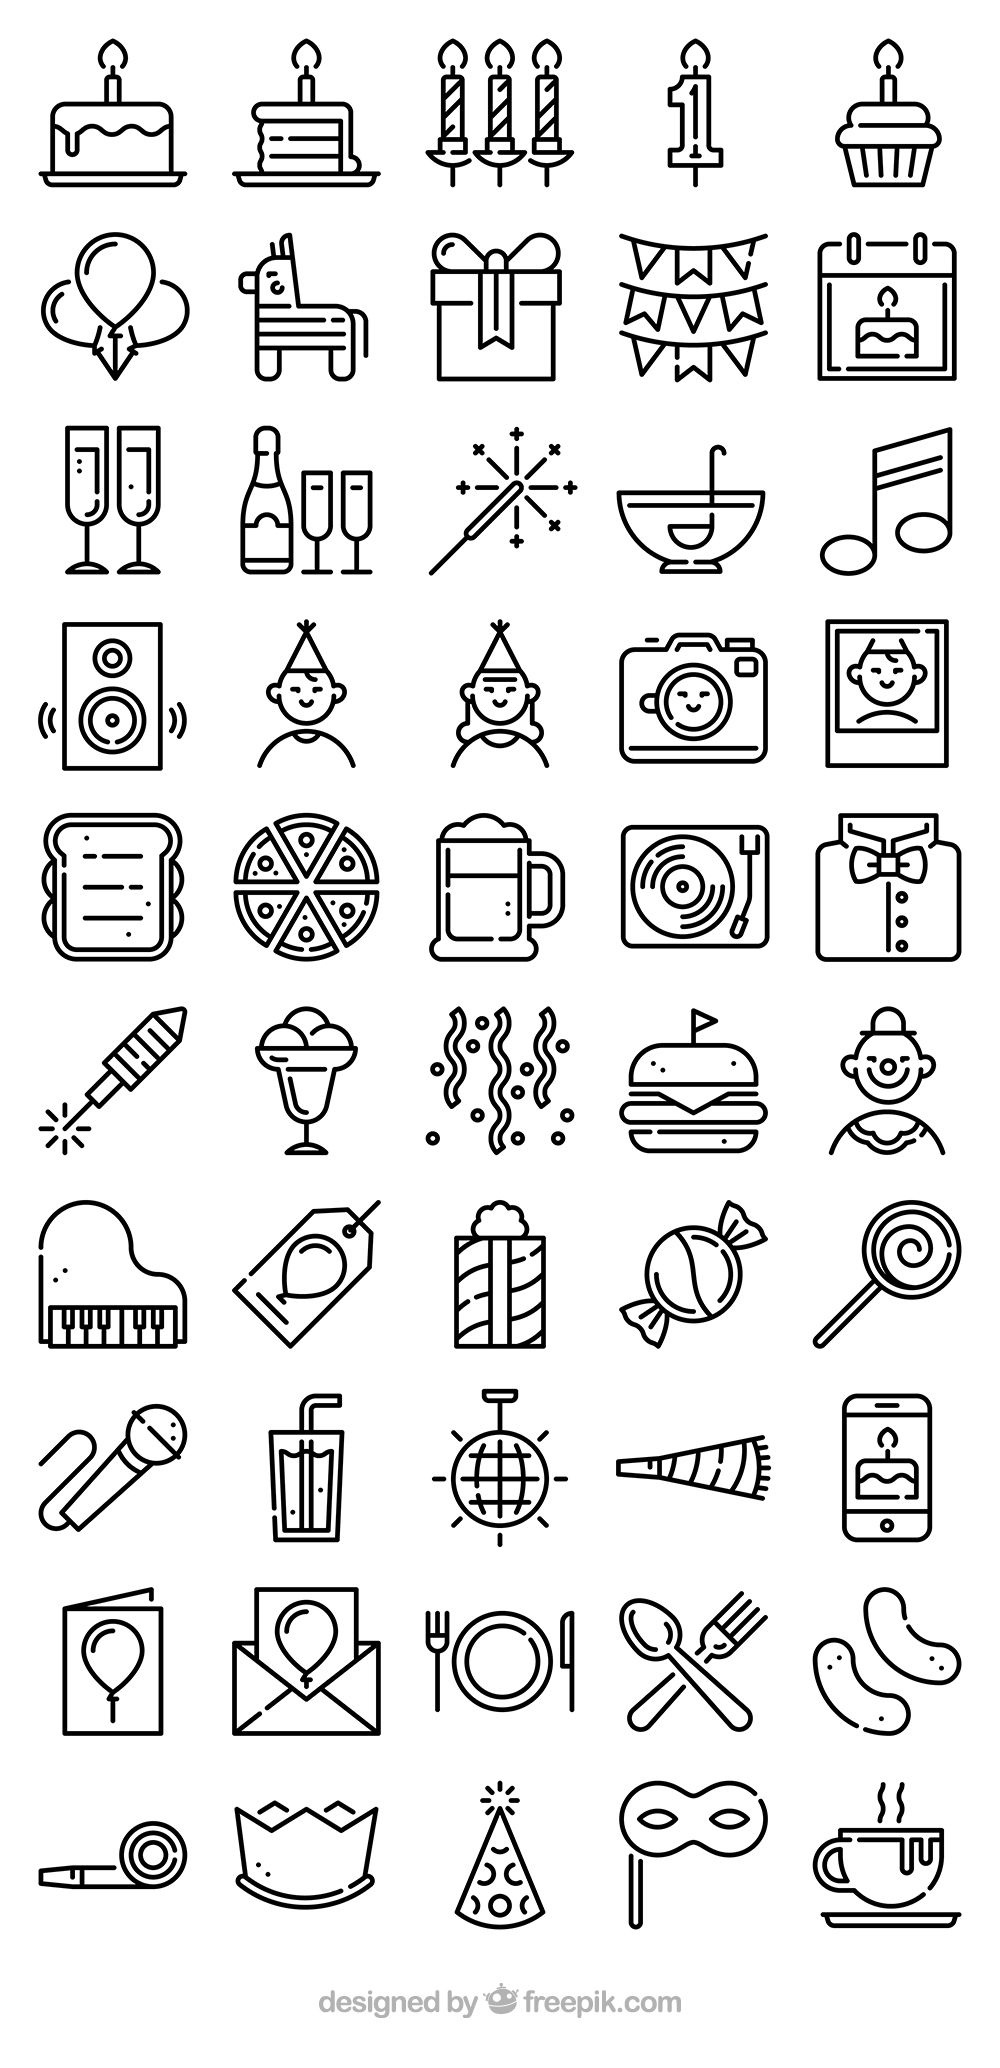 50 premium vector icons of Birthday Party designed by